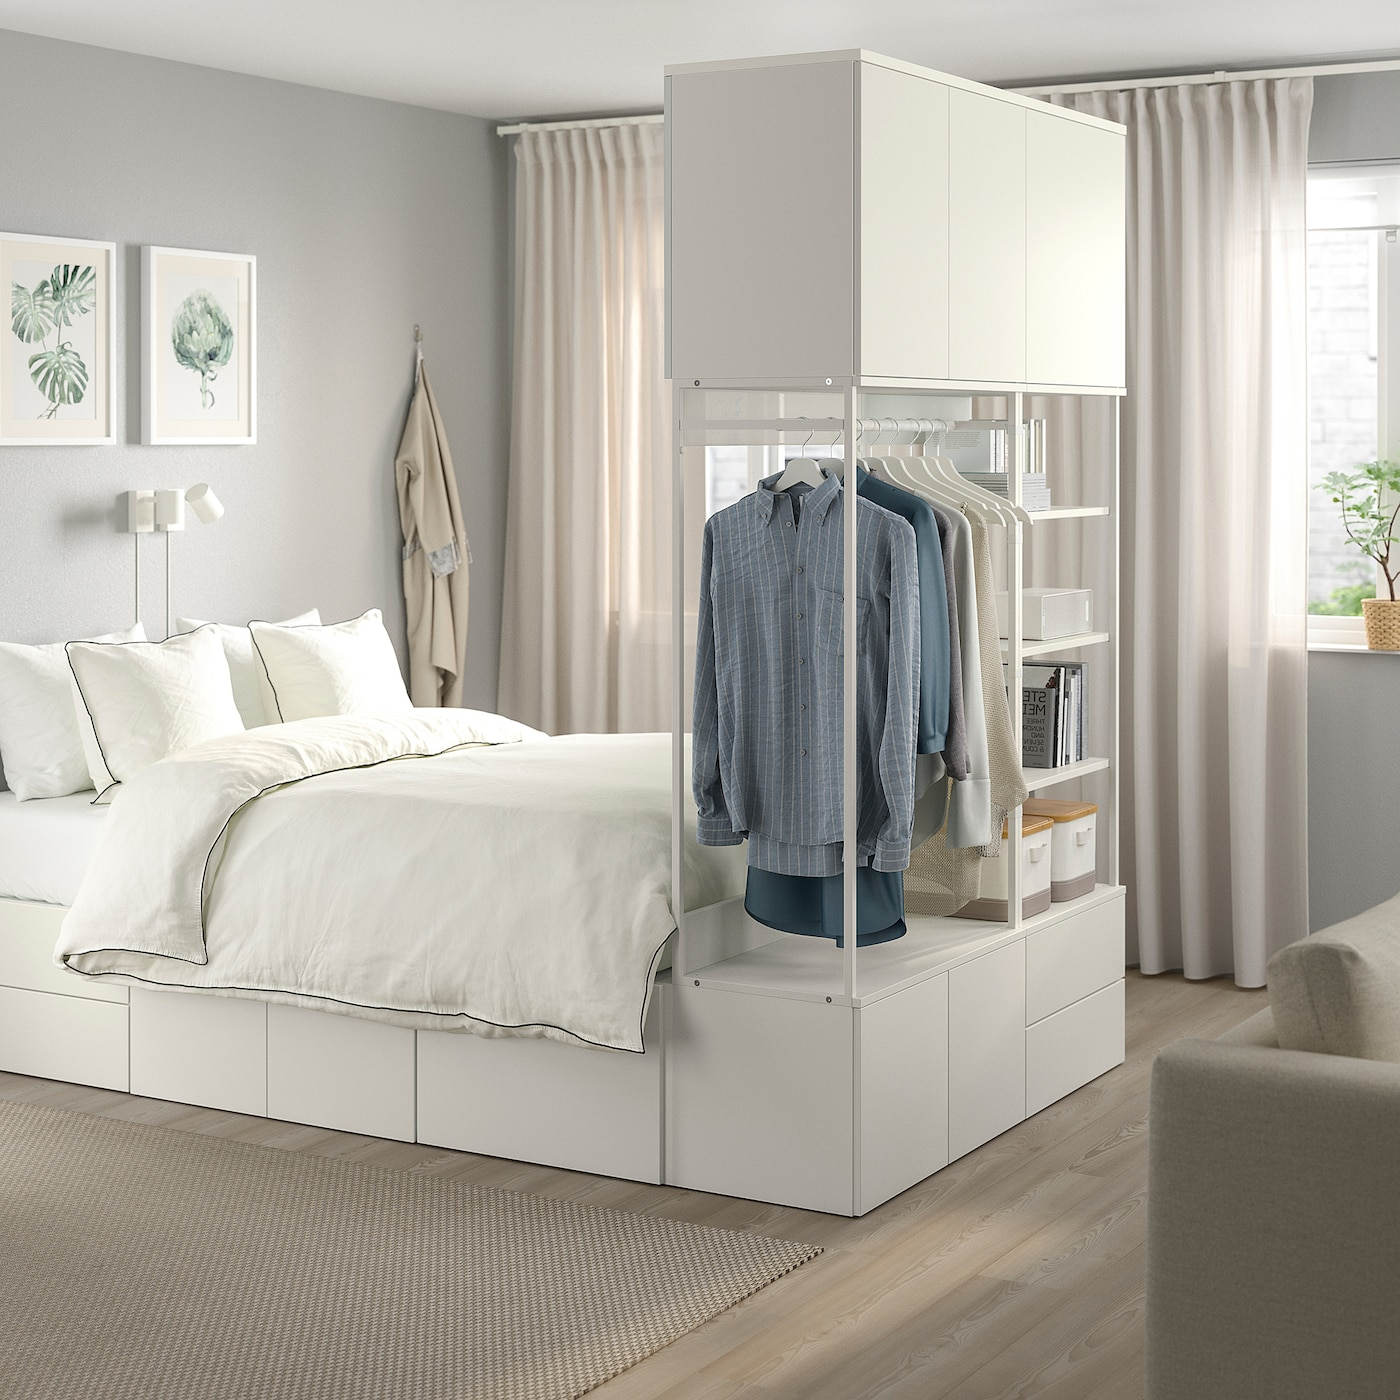 PLATSA Bed frame with 8 door+4 drawers - white, Fonnes - IKEA